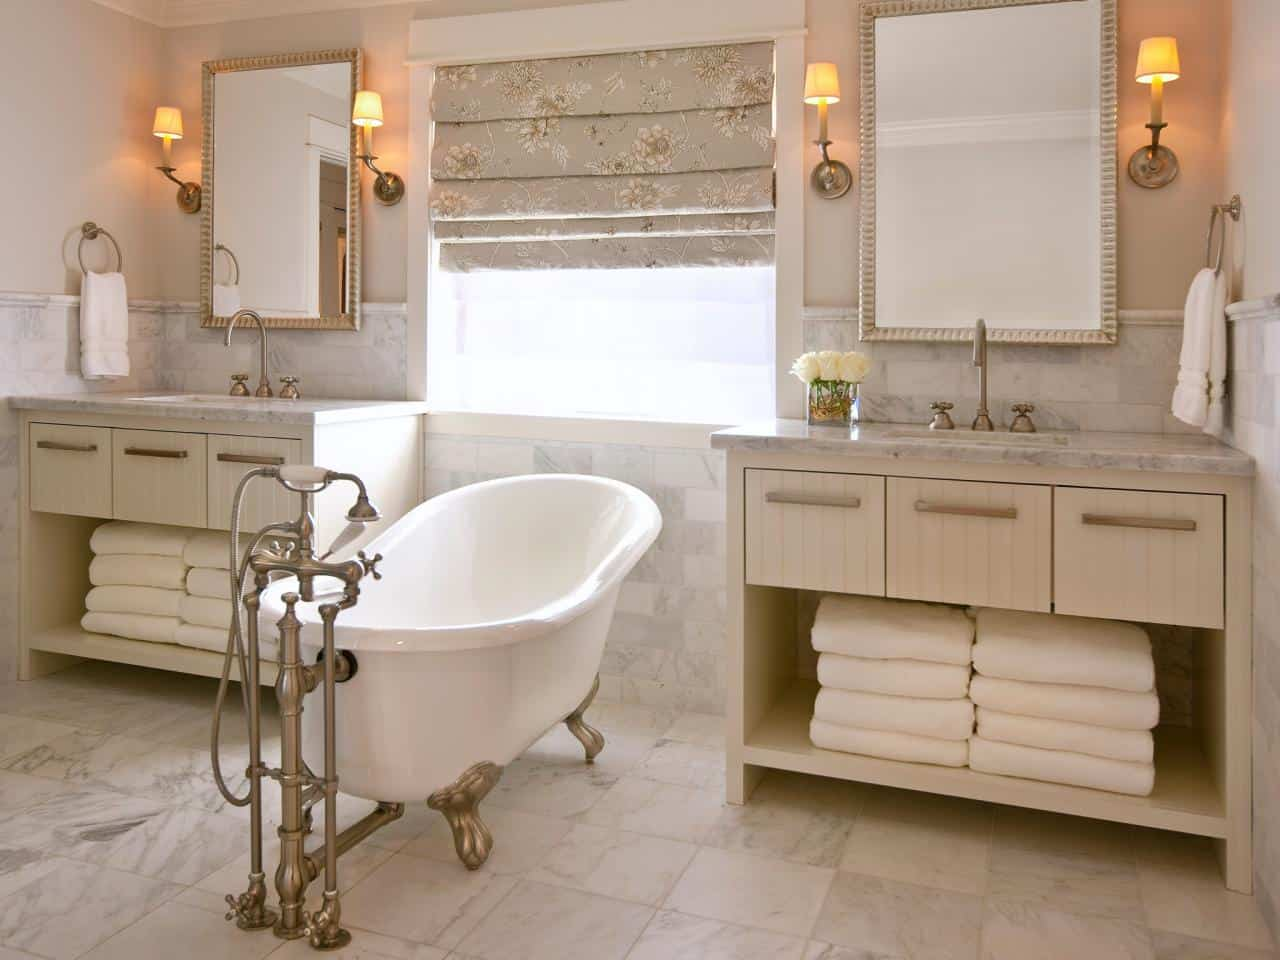 Soaking Tub with Antique Inspiration